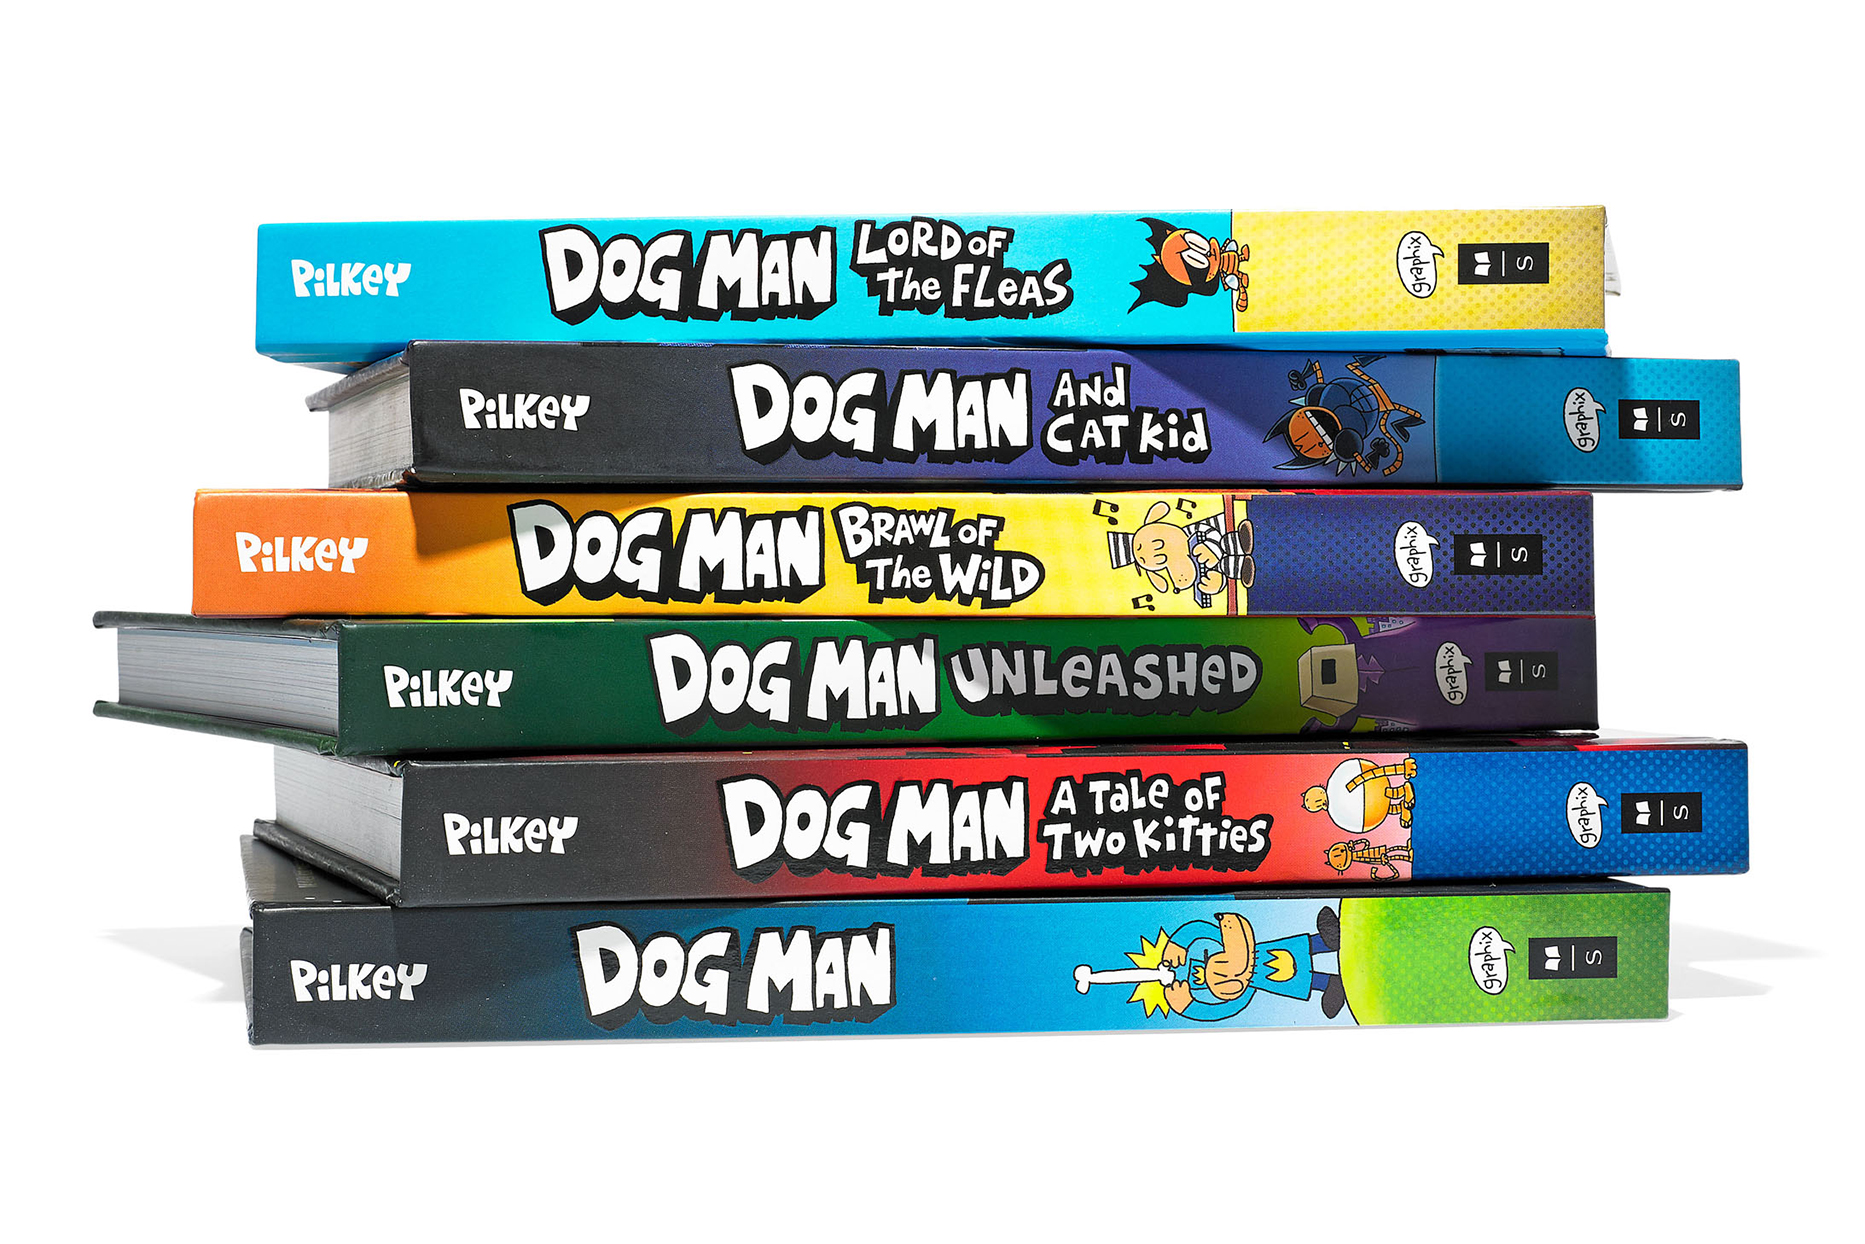 colorful stack of dog man comic books